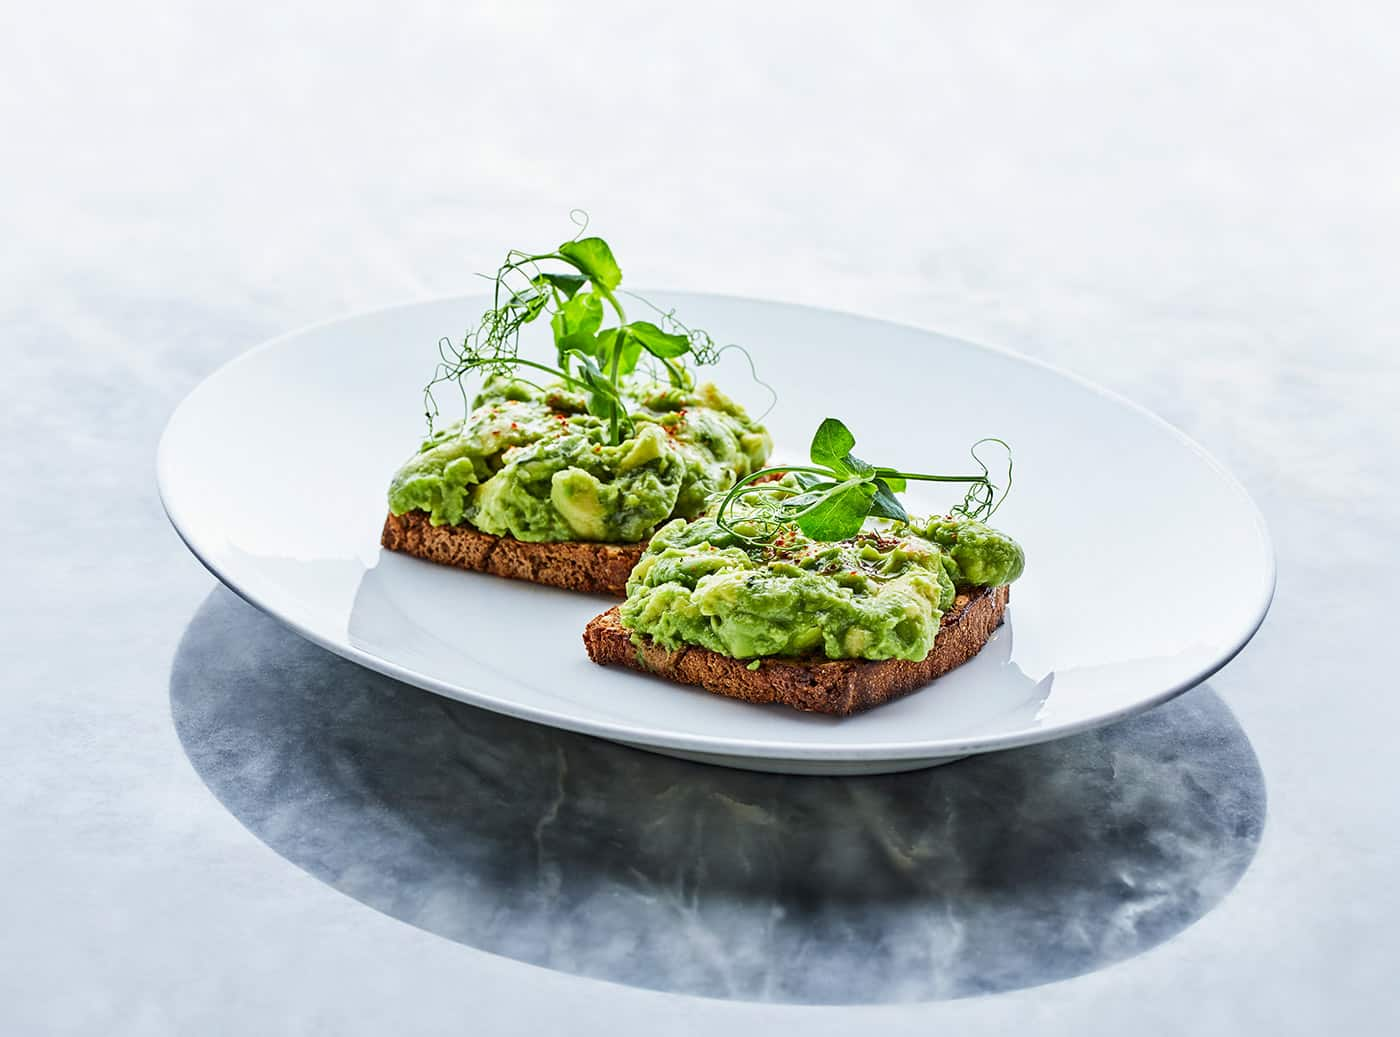 a plate with avocado on a marble tabel